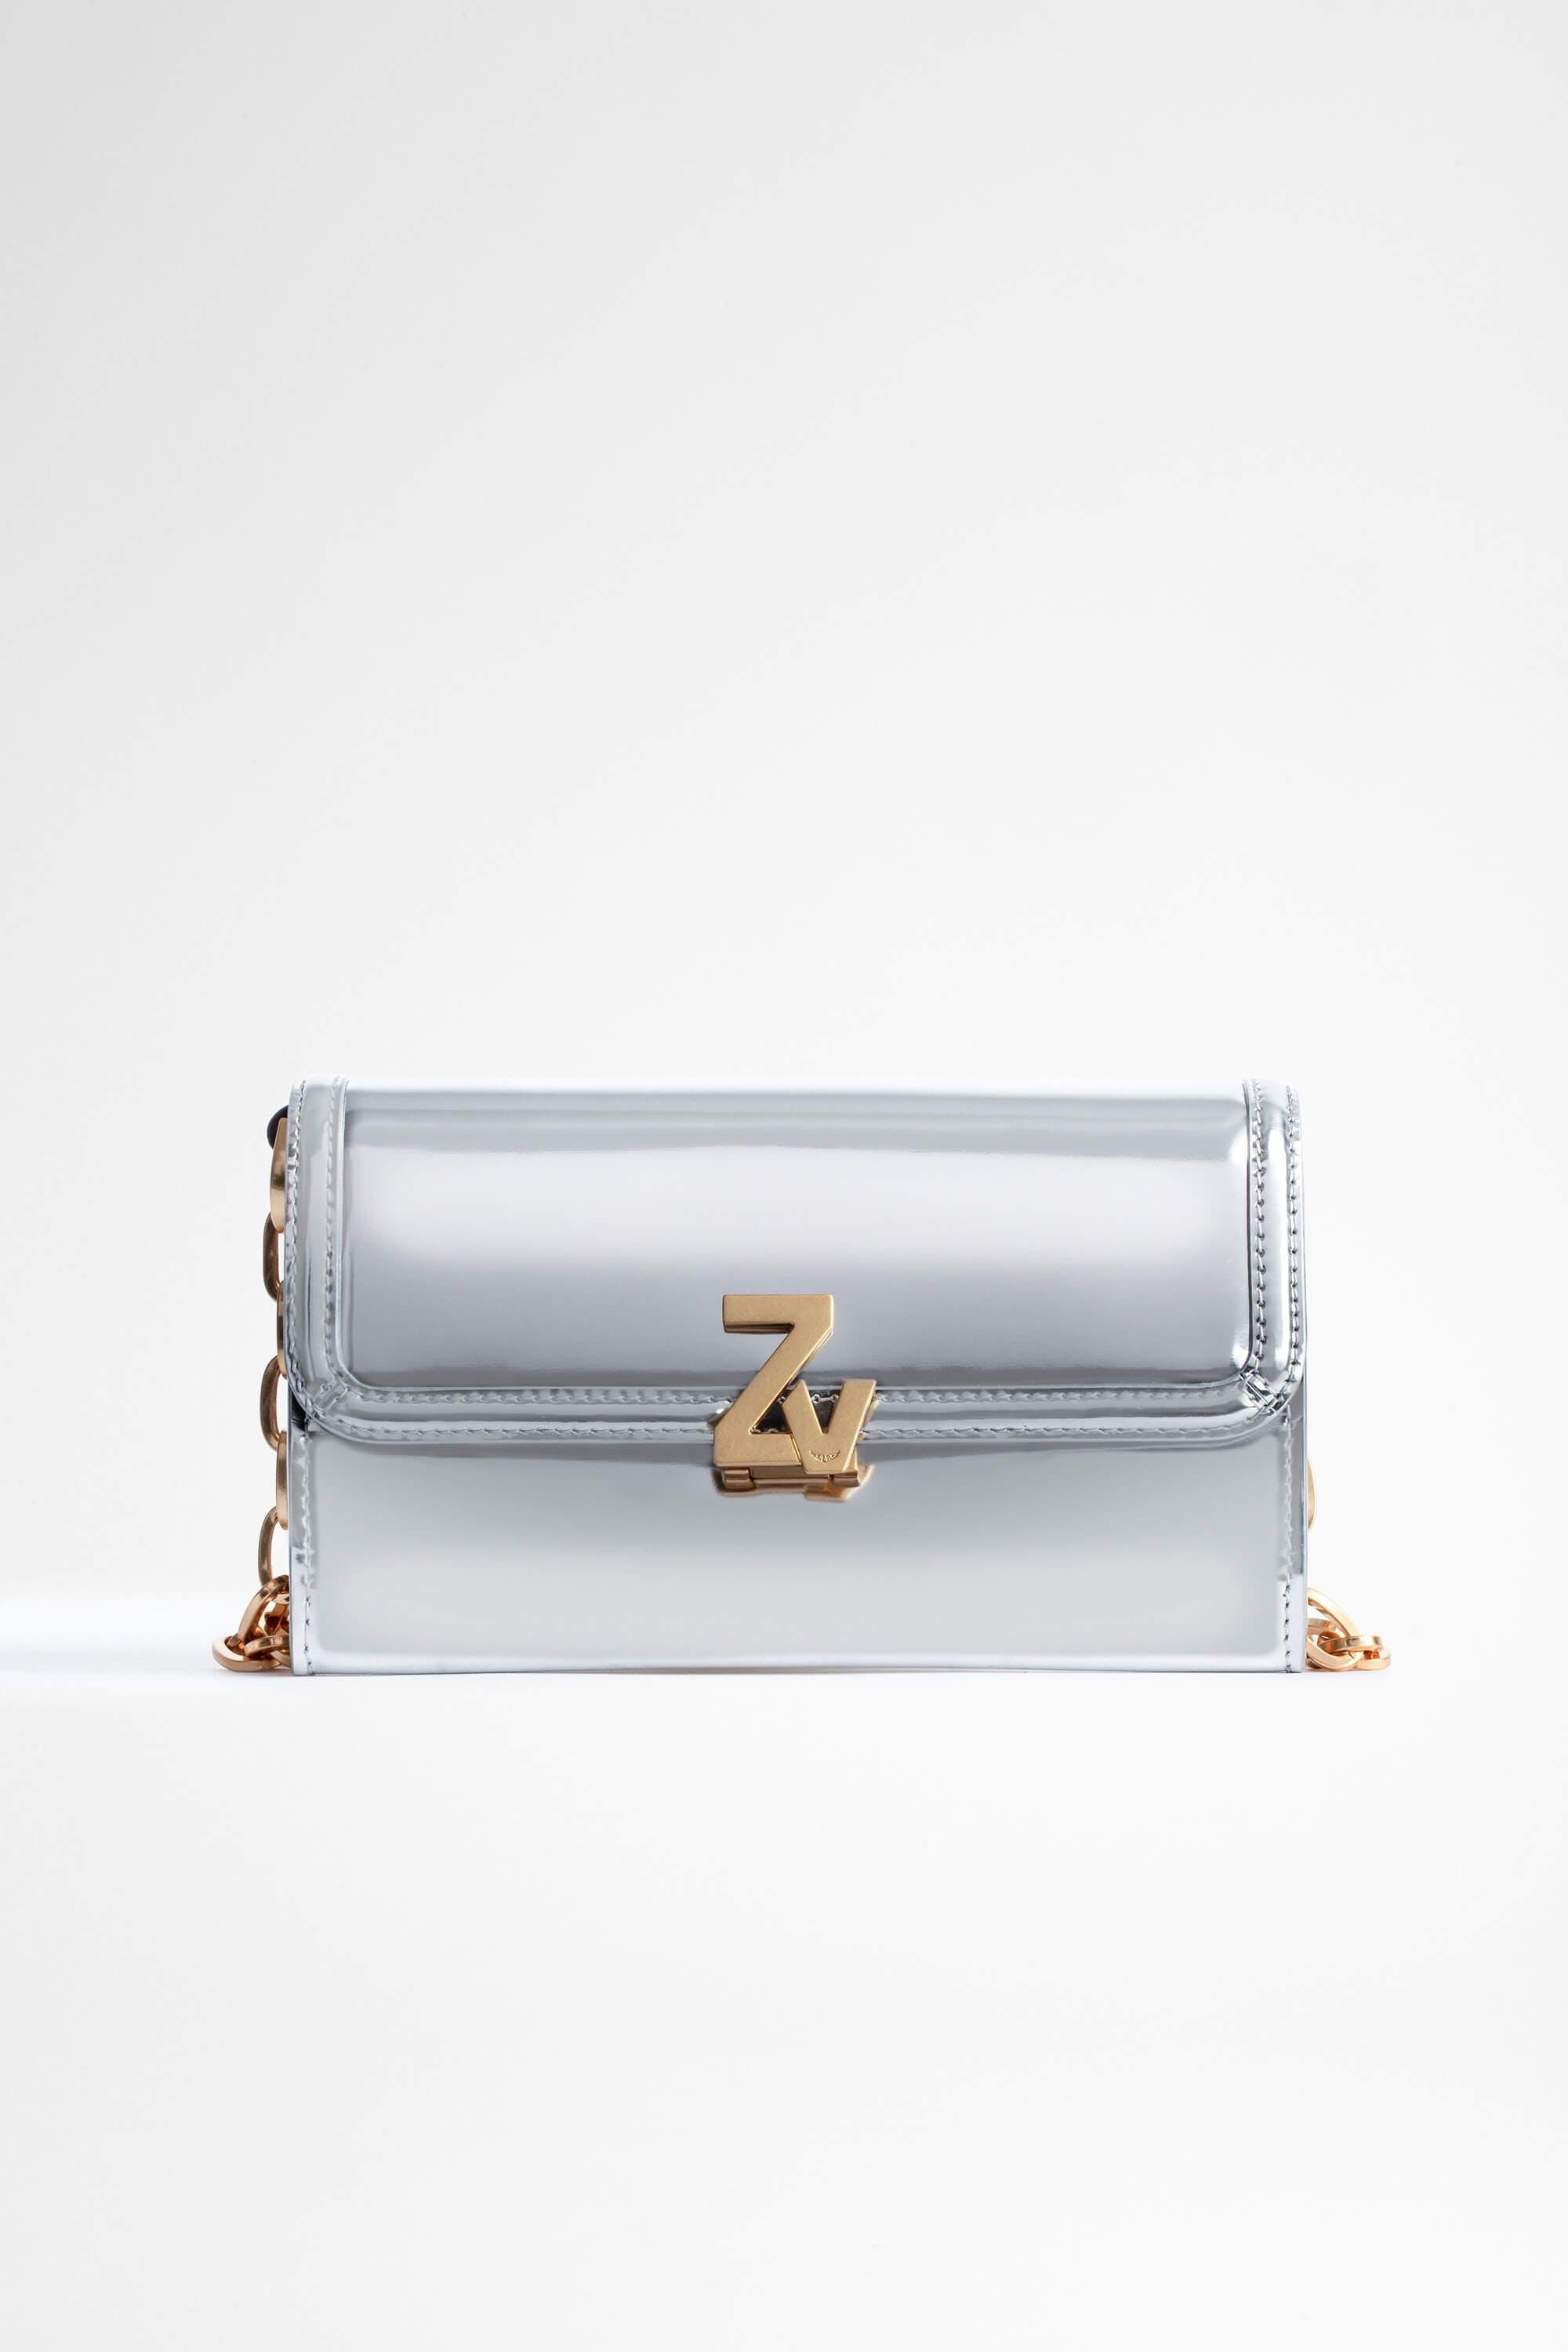 ZV Initiale Le Tote Wallet